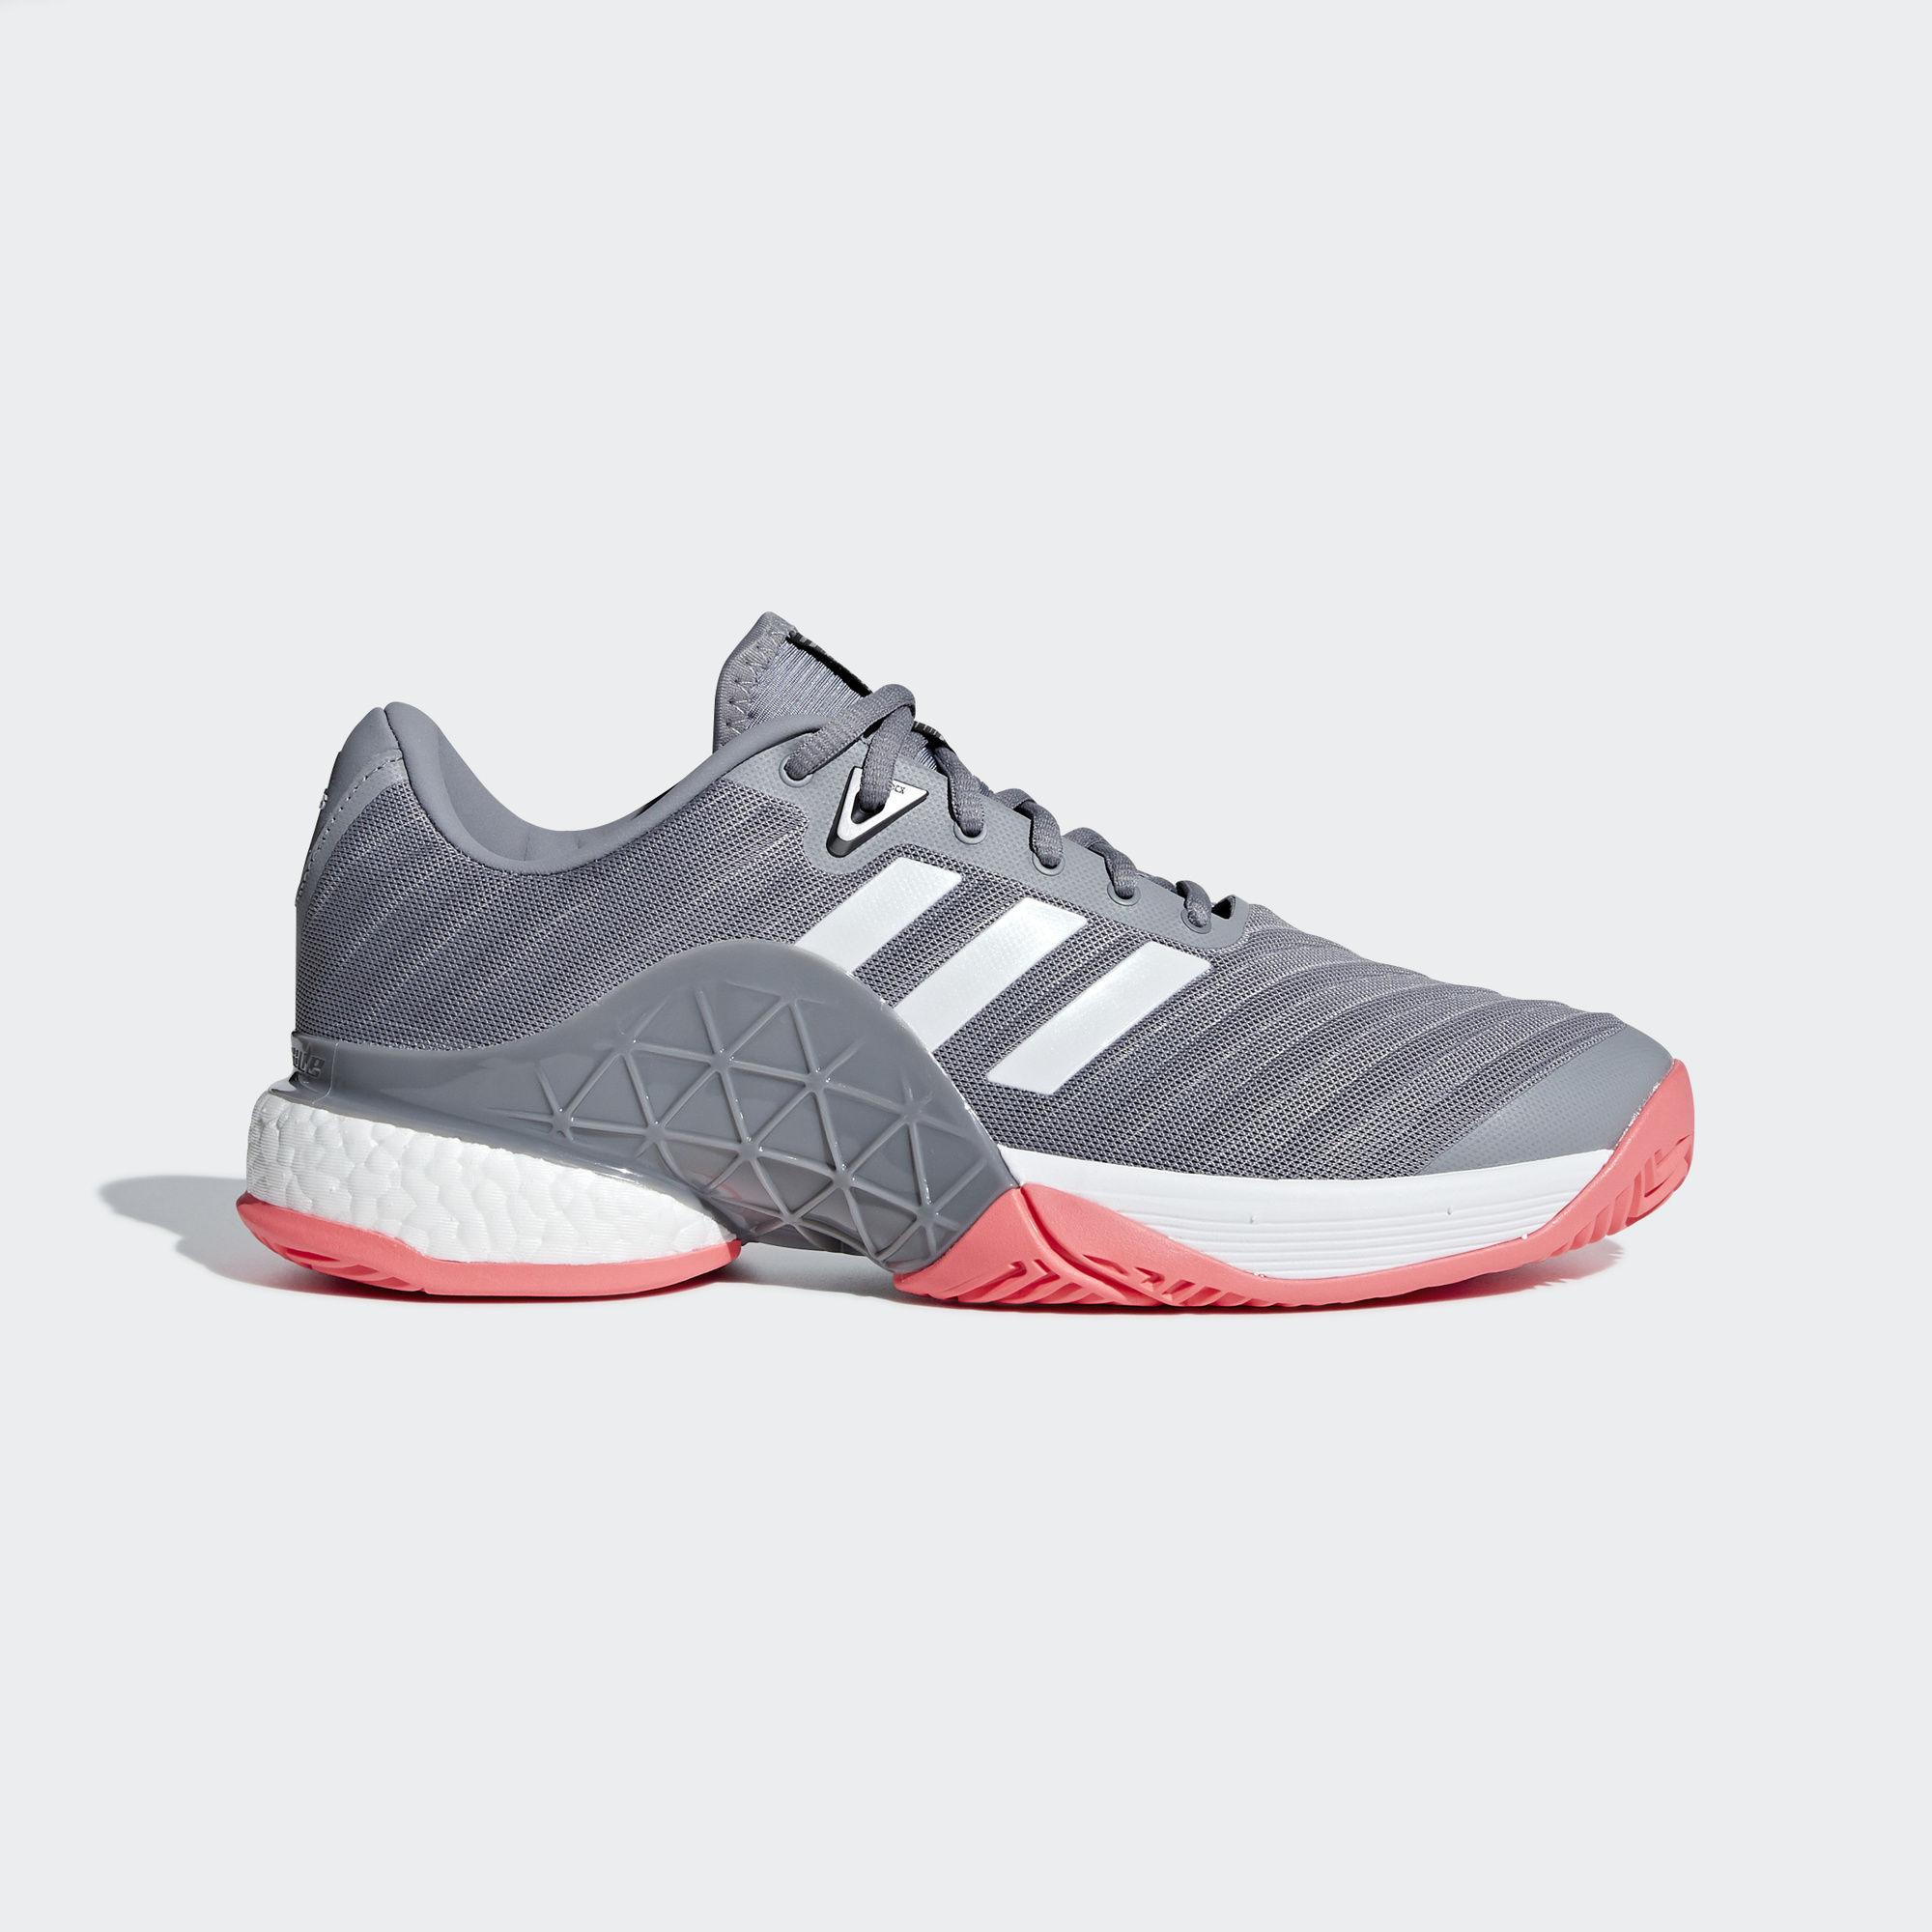 Adidas Mens Barricade Code Boost 2018 Tennis Shoes Matte SilverScarlet